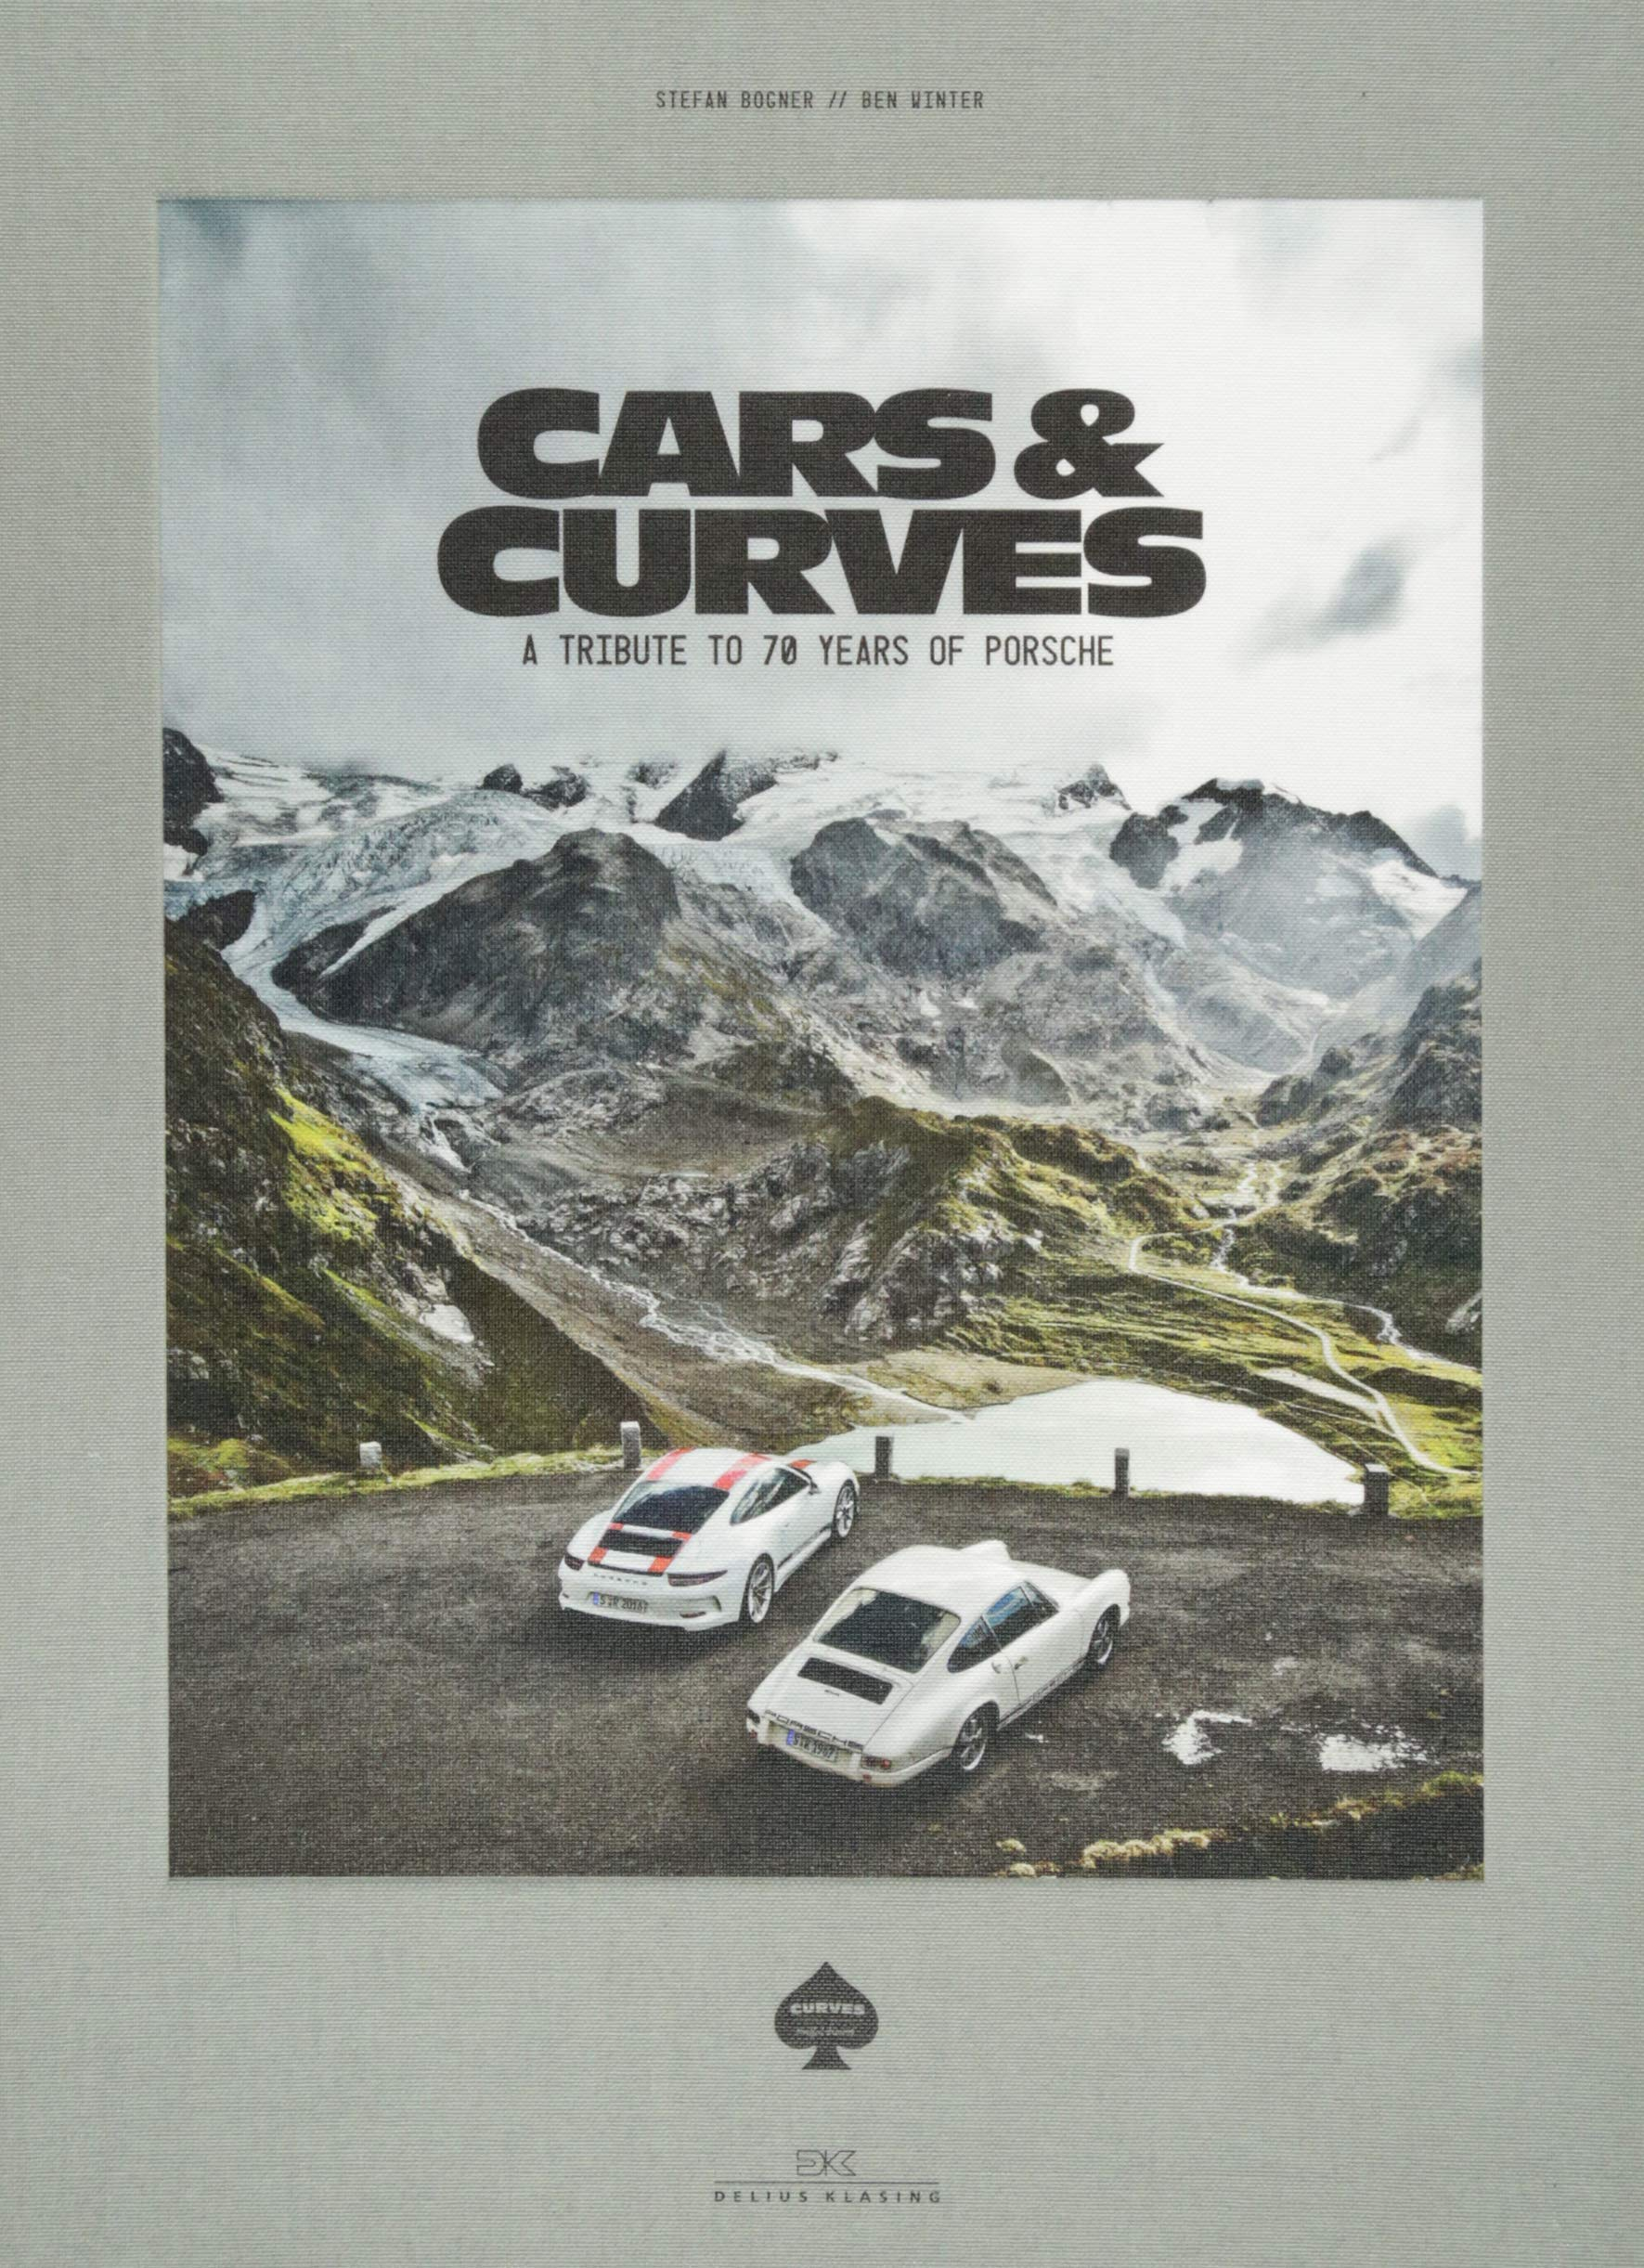 Image OfCars & Curves: A Tribute To 70 Years Of Porsche